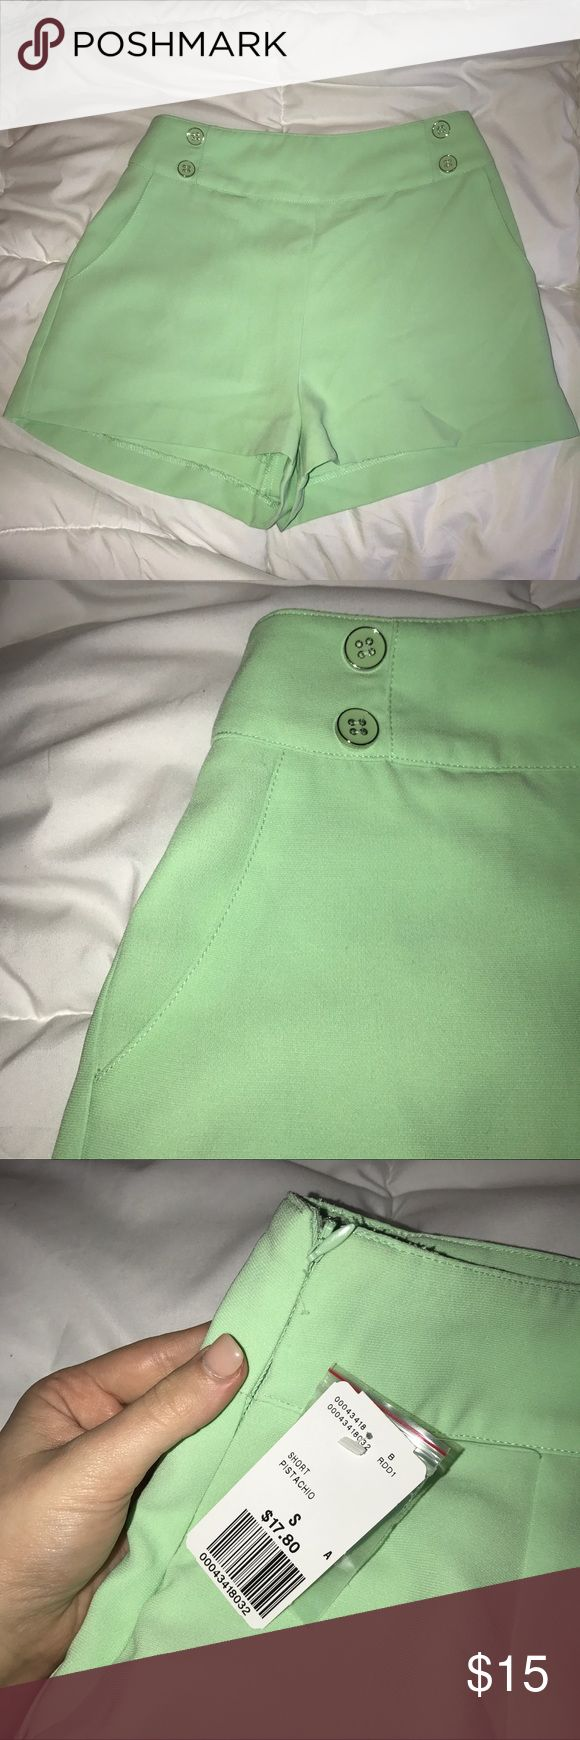 Mint Green Highwaisted Shorts! Brand new, never worn! I do NOT do trades. Use the offer button, and leave any questions below and I'll be sure to answer ASAP. Smoke free, and pet free home! Happy Shopping! Bundle for a deal! ✨💛🐰 Forever 21 Shorts